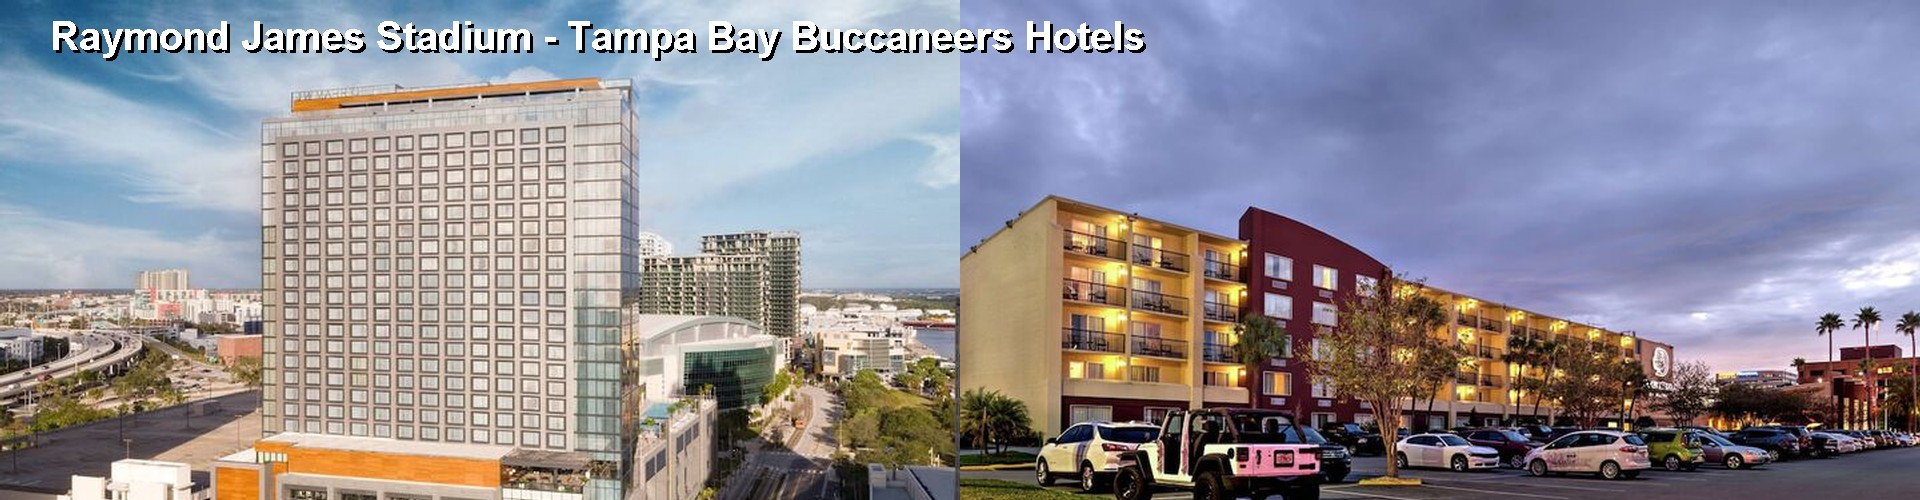 $38+ Hotels Near Raymond James Stadium Tampa Bay Buccaneers (FL)